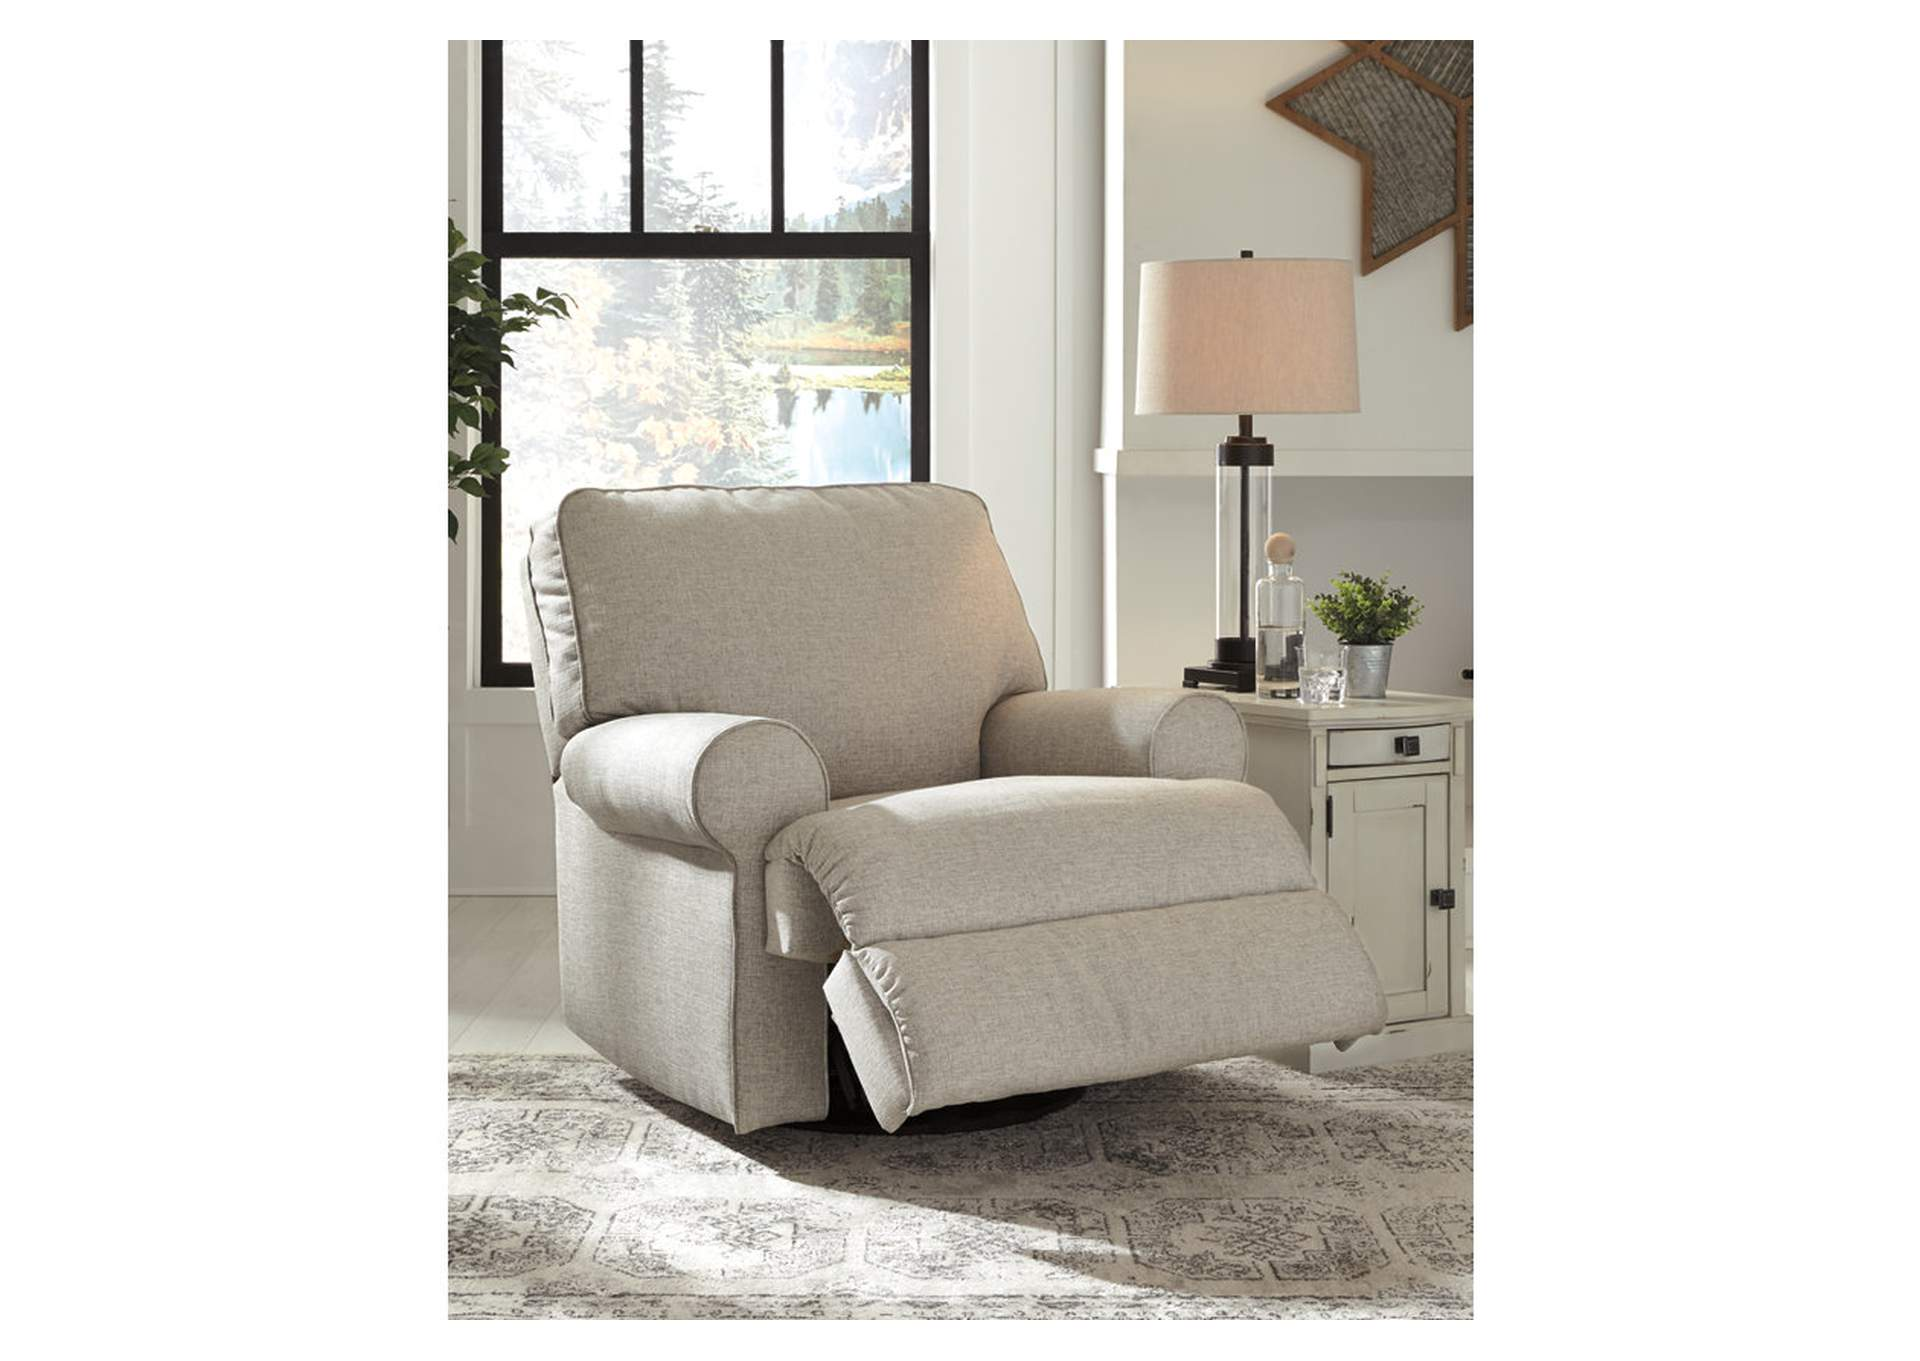 Ferncliff Sepia Swivel Glider Recliner,Signature Design By Ashley